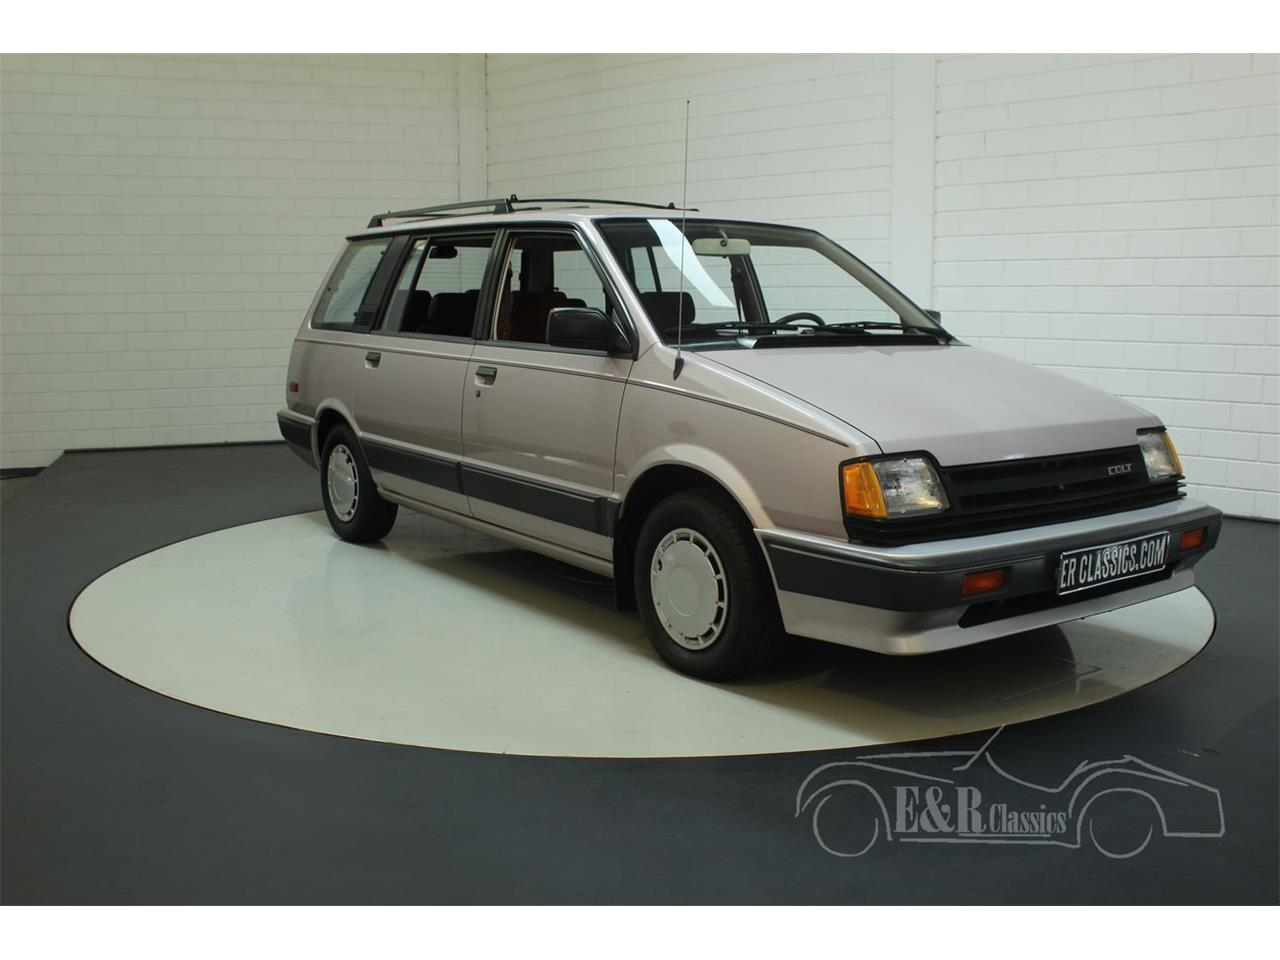 Large Picture of 1987 Dodge Colt located in [nl] Pays-Bas - $16,900.00 Offered by E & R Classics - PVV4